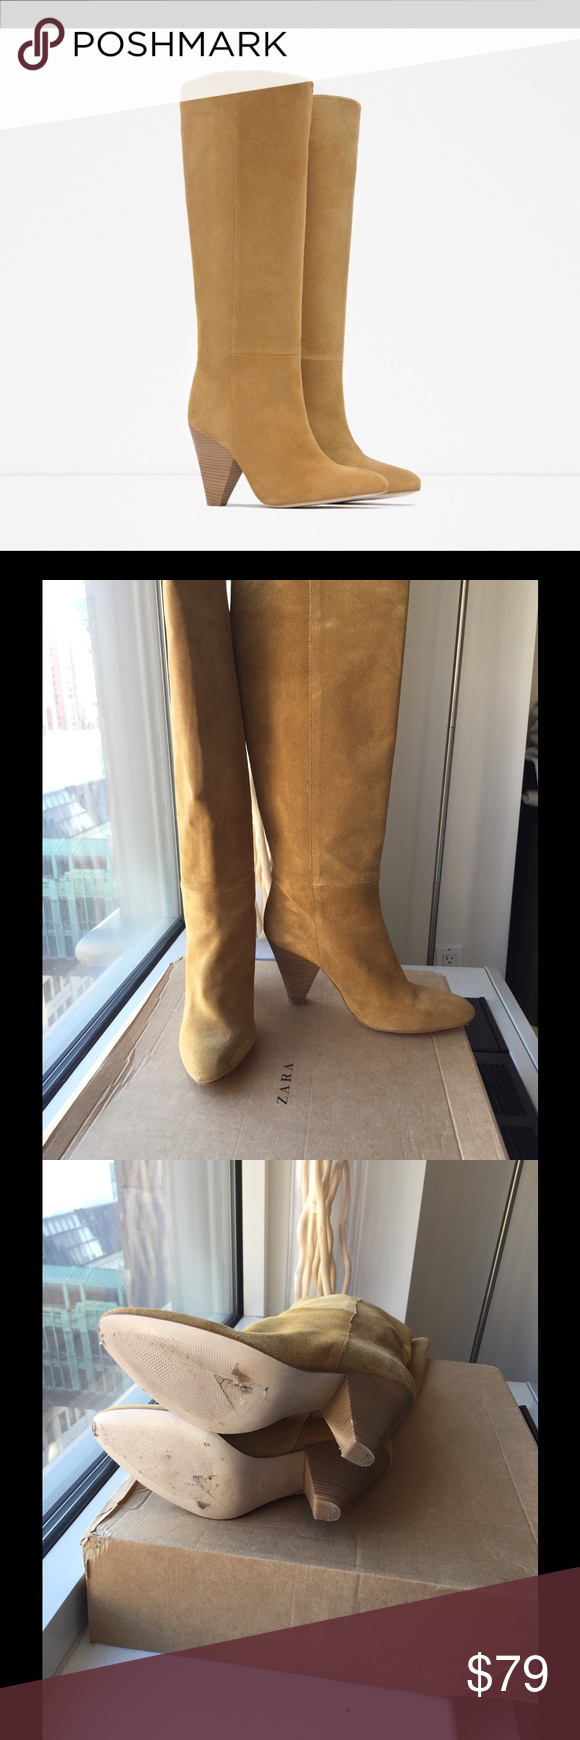 "Zara tan suede knee boots with cone heel Tan suede boot, 3"" heel.  No signs of wear on the suede.  Minor signs of wear on the bottom from the store. Fits 8.5 to 9 but Shoe states 40. Zara Shoes Heeled Boots"